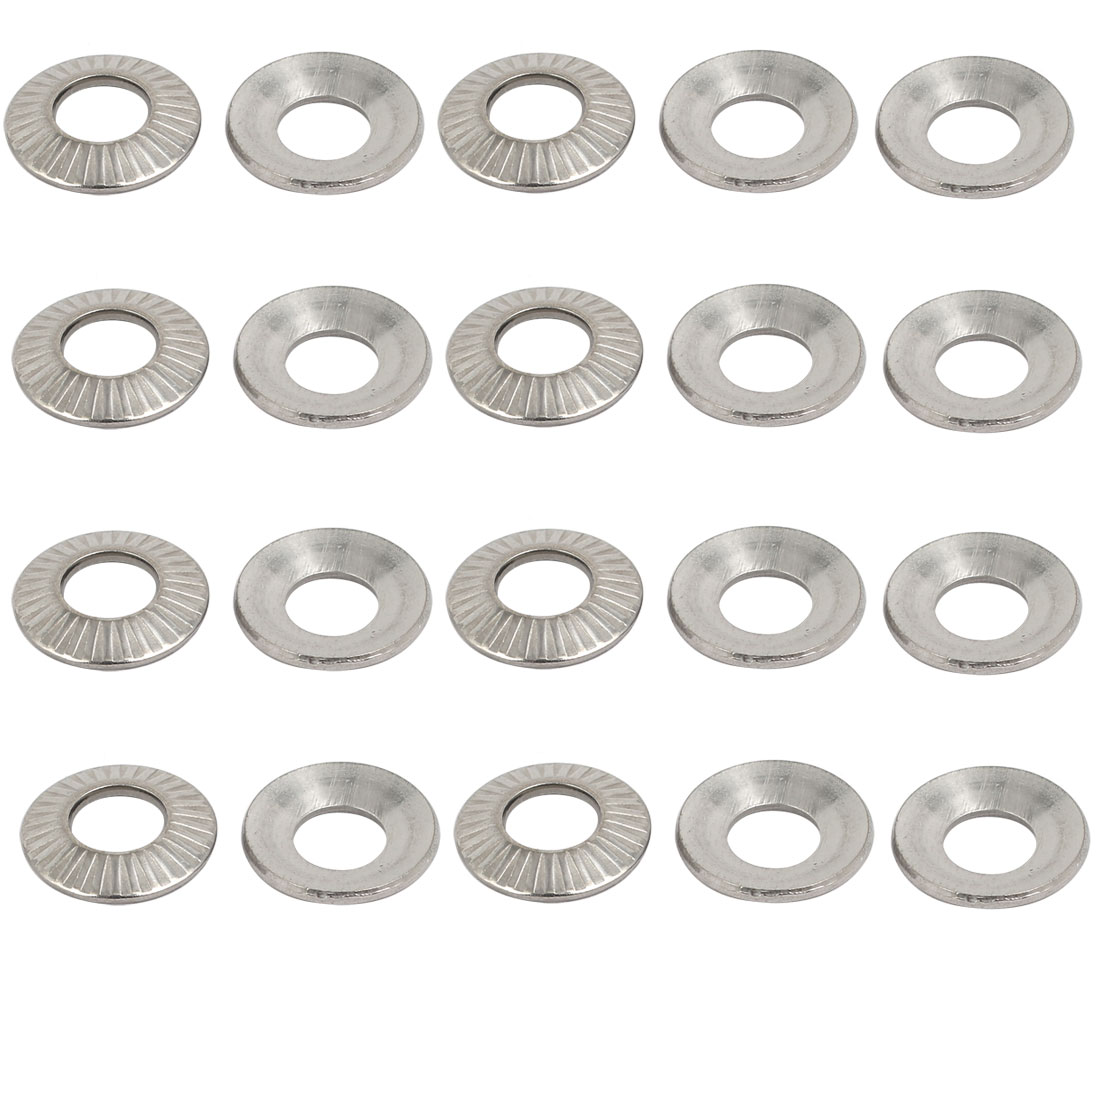 M6 304 Stainless Steel Industrial Locking Washer Silver Tone 20pcs